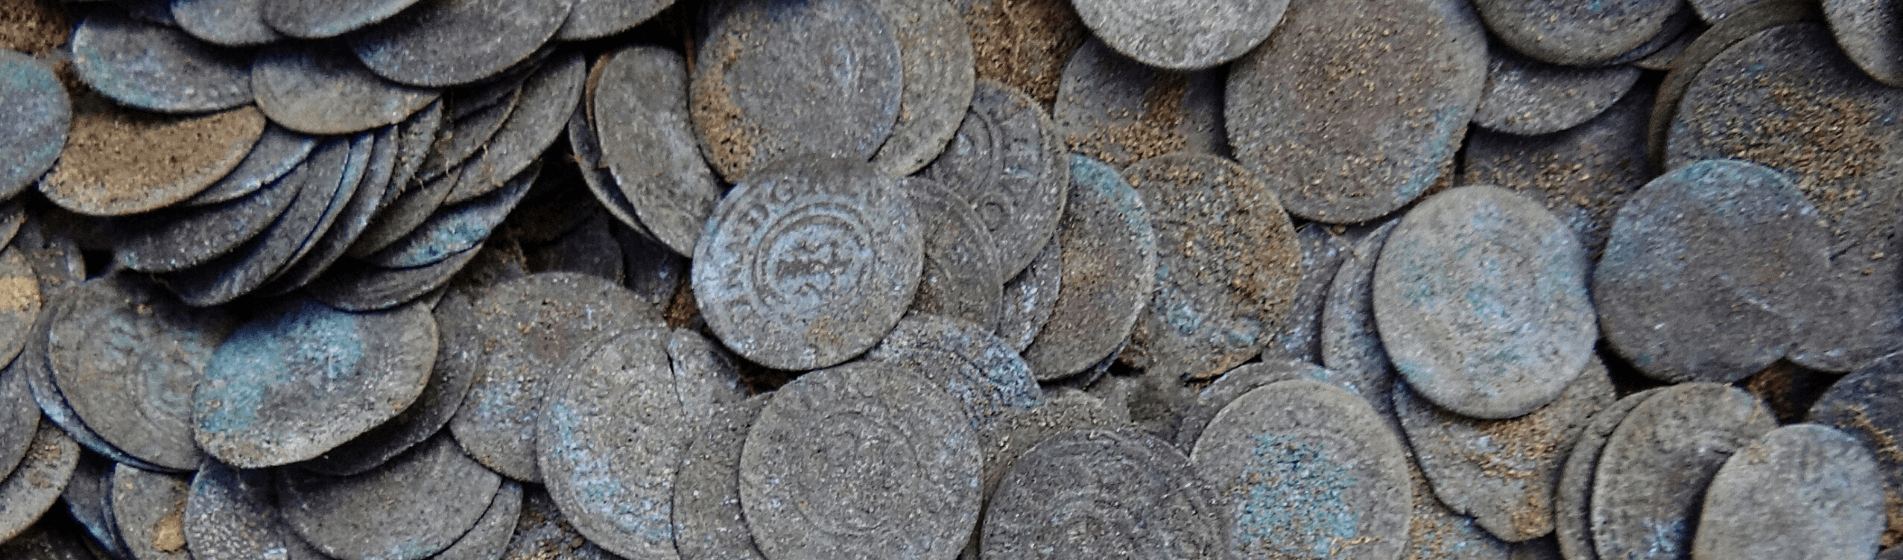 The American hyperinflation that put ancient emperors to shame